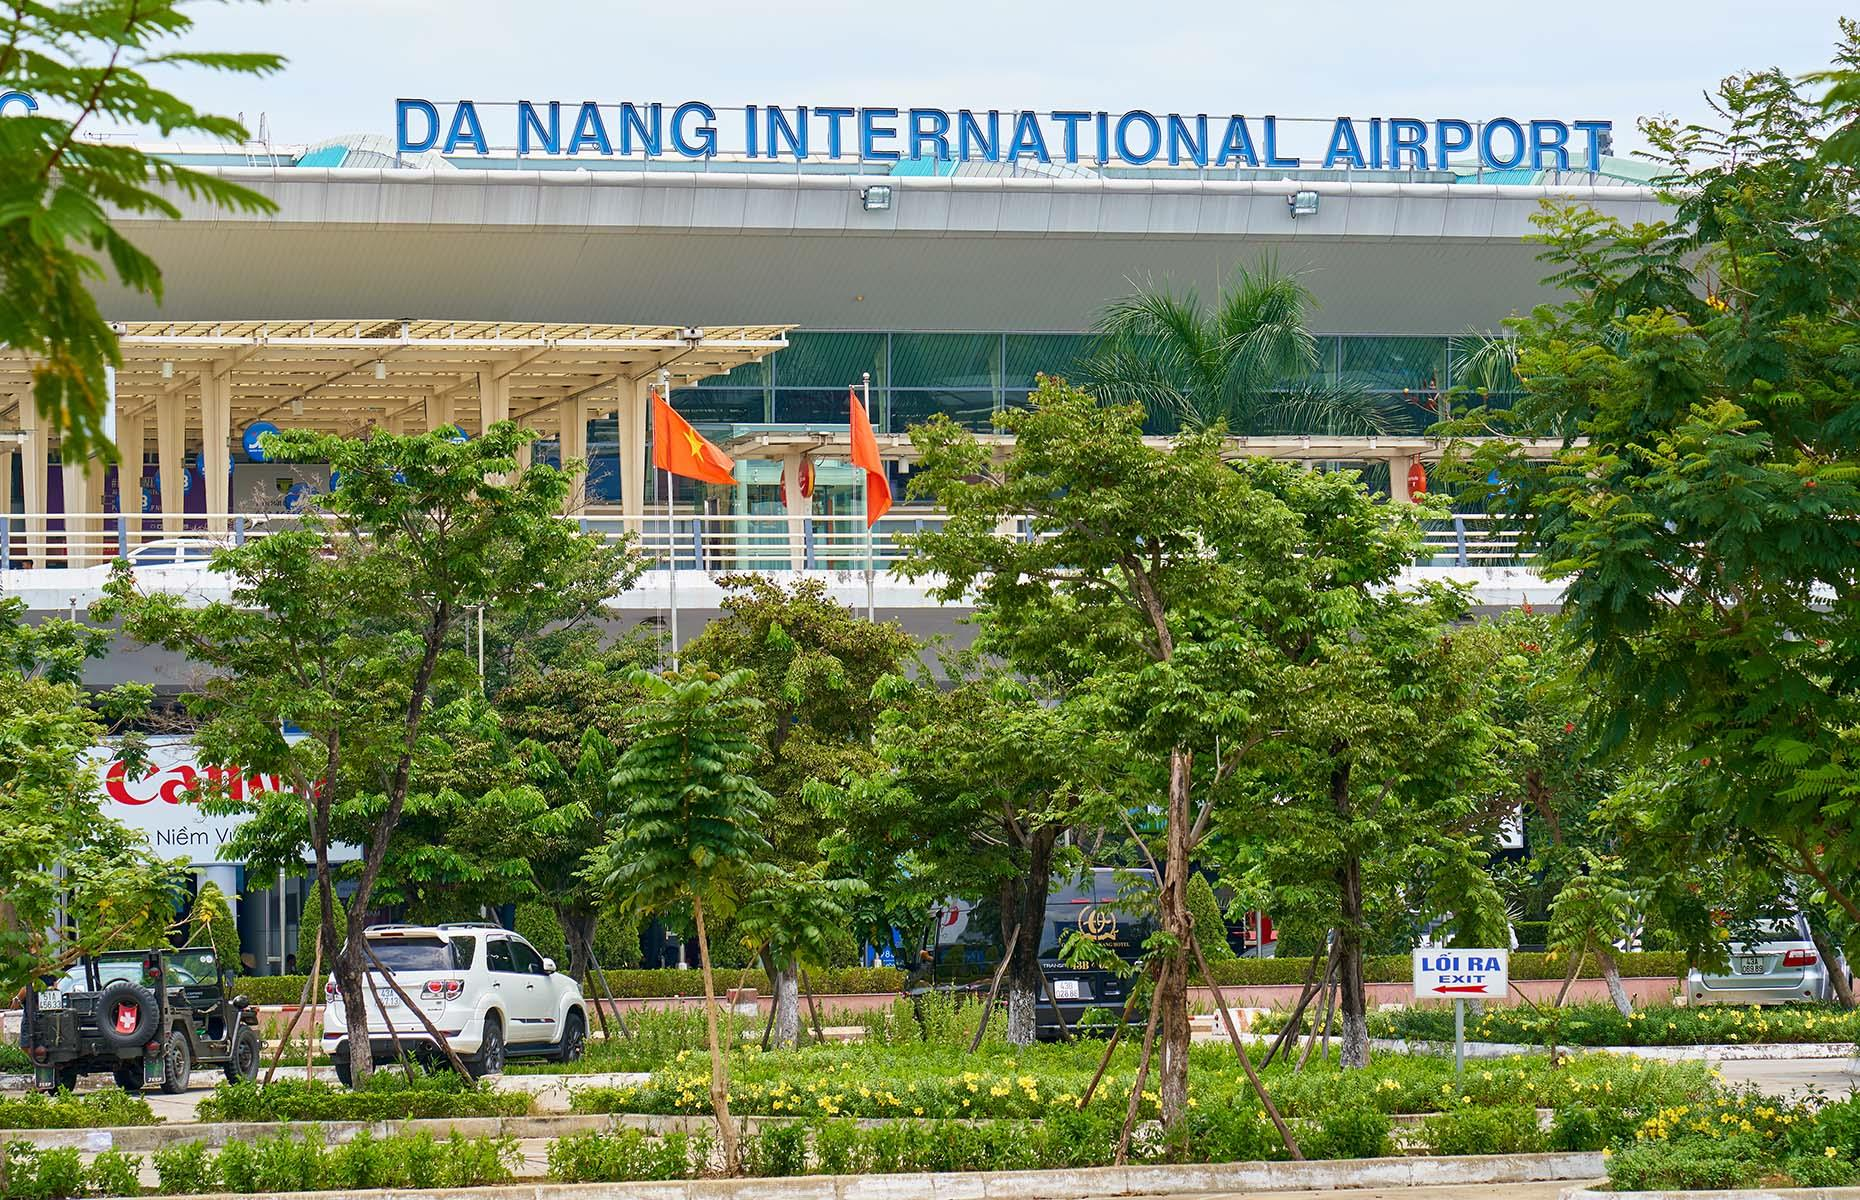 Slide 7 of 20: A fitting list to include a DAD joke, this is the airport code for the Da Nang International Airport in Vietnam. Funnily enough, there is also MOM – Letfotar Airport in Moudjeria, Mauritania.